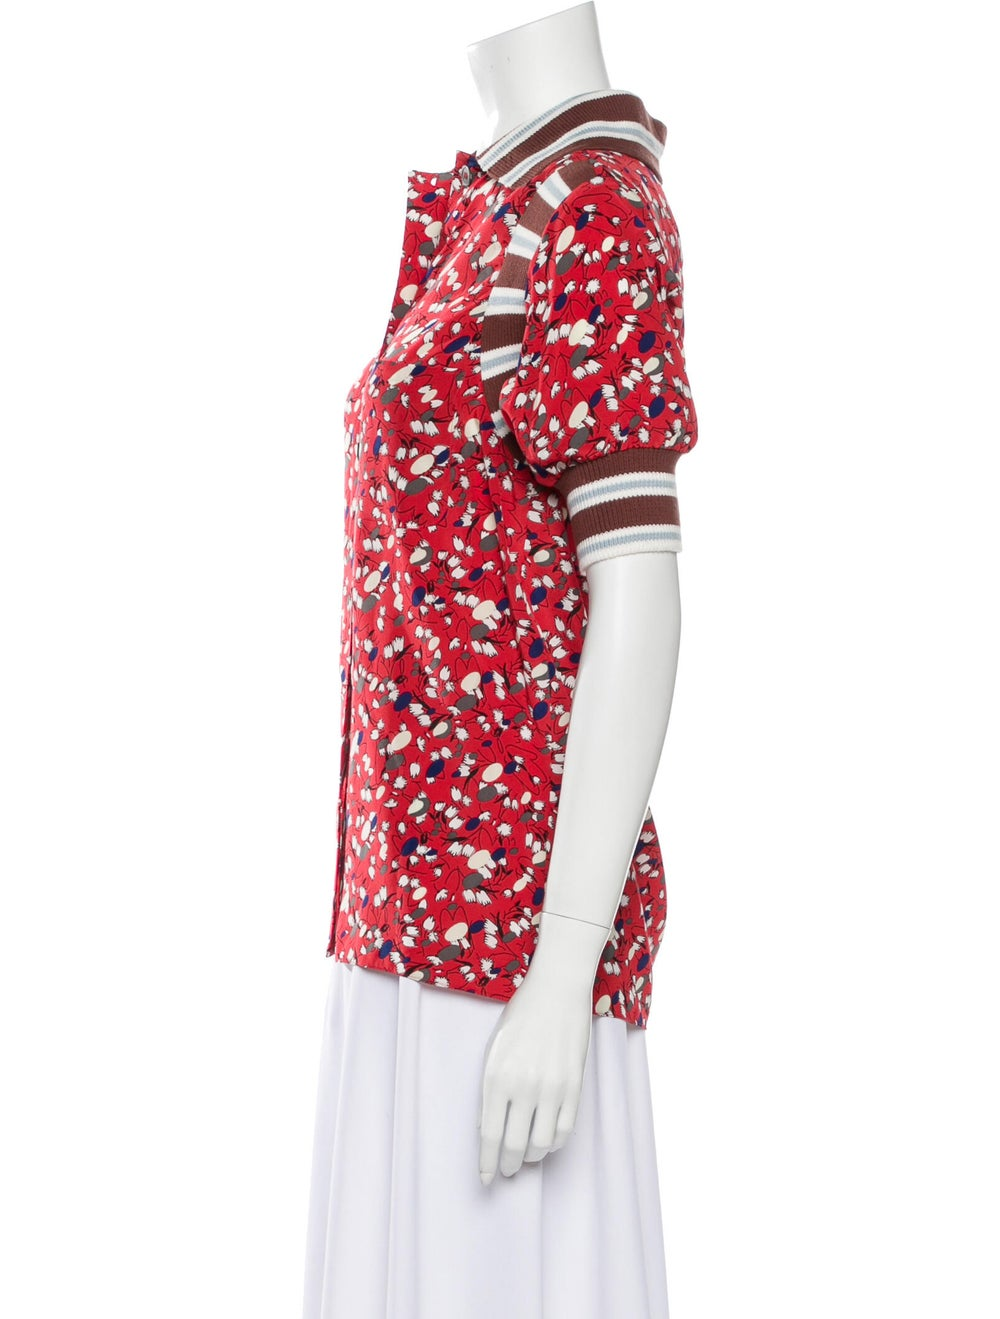 Marni Silk Floral Print Button-Up Top Red - image 2